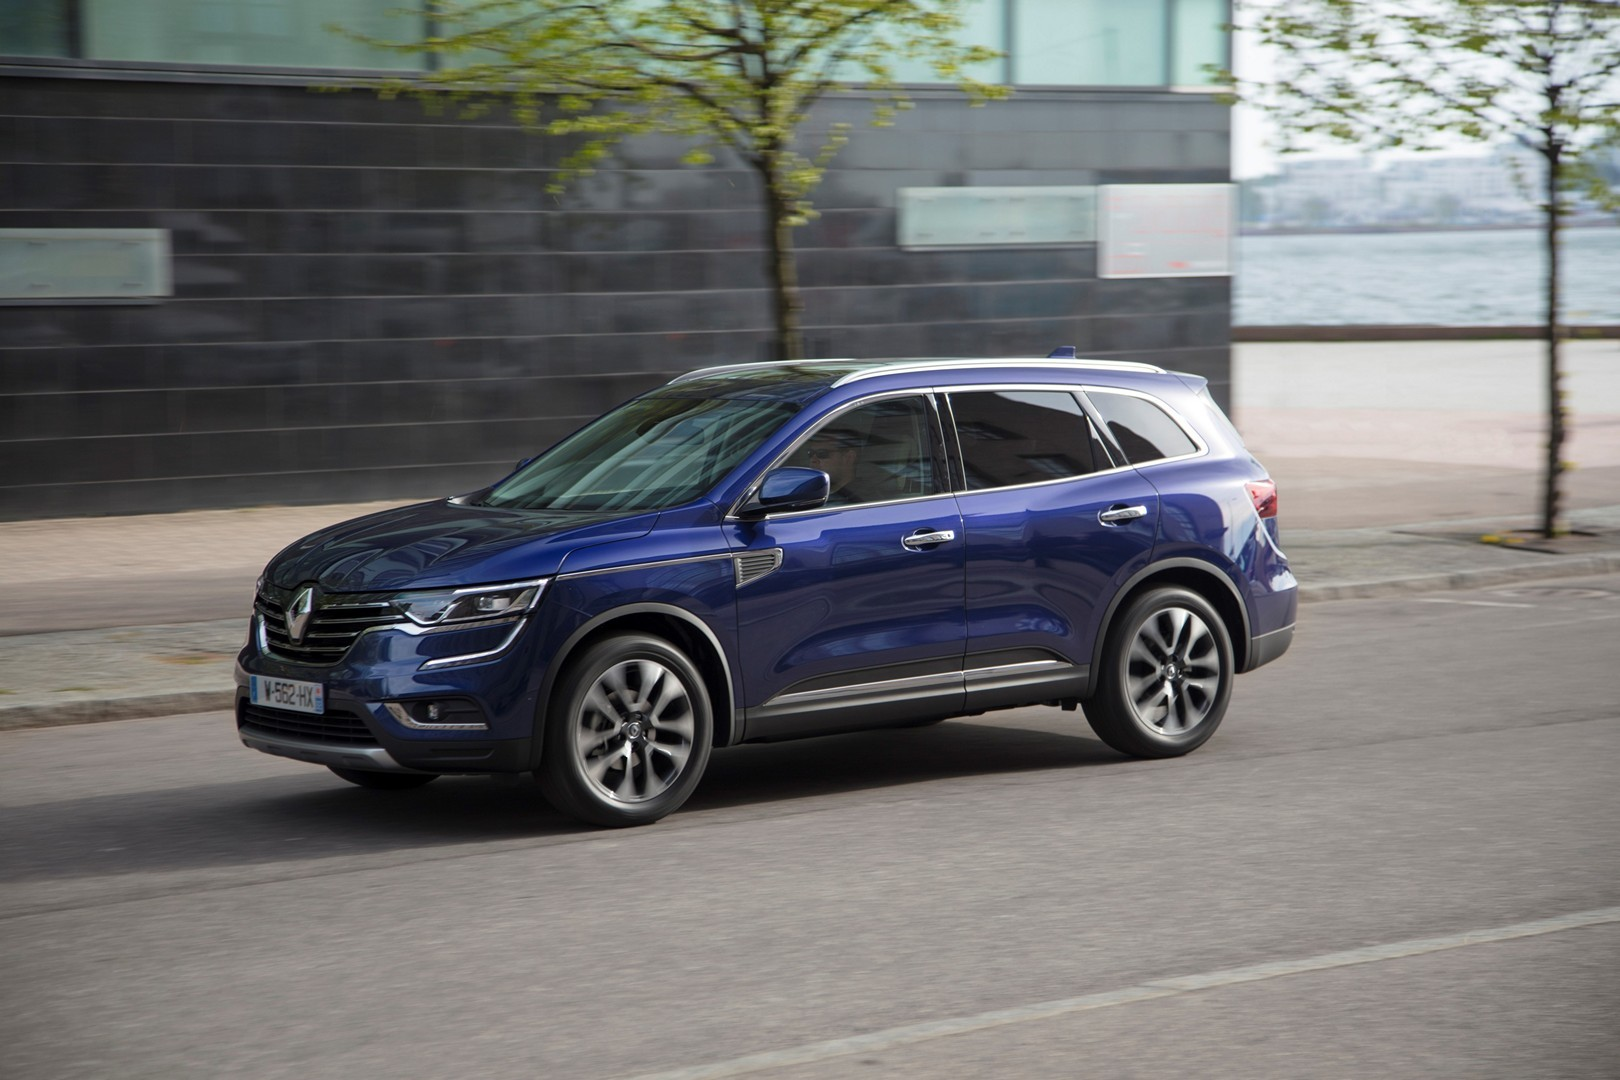 new car launches europeAllNew Renault Koleos Launched With 16 and 20Liter Diesels in